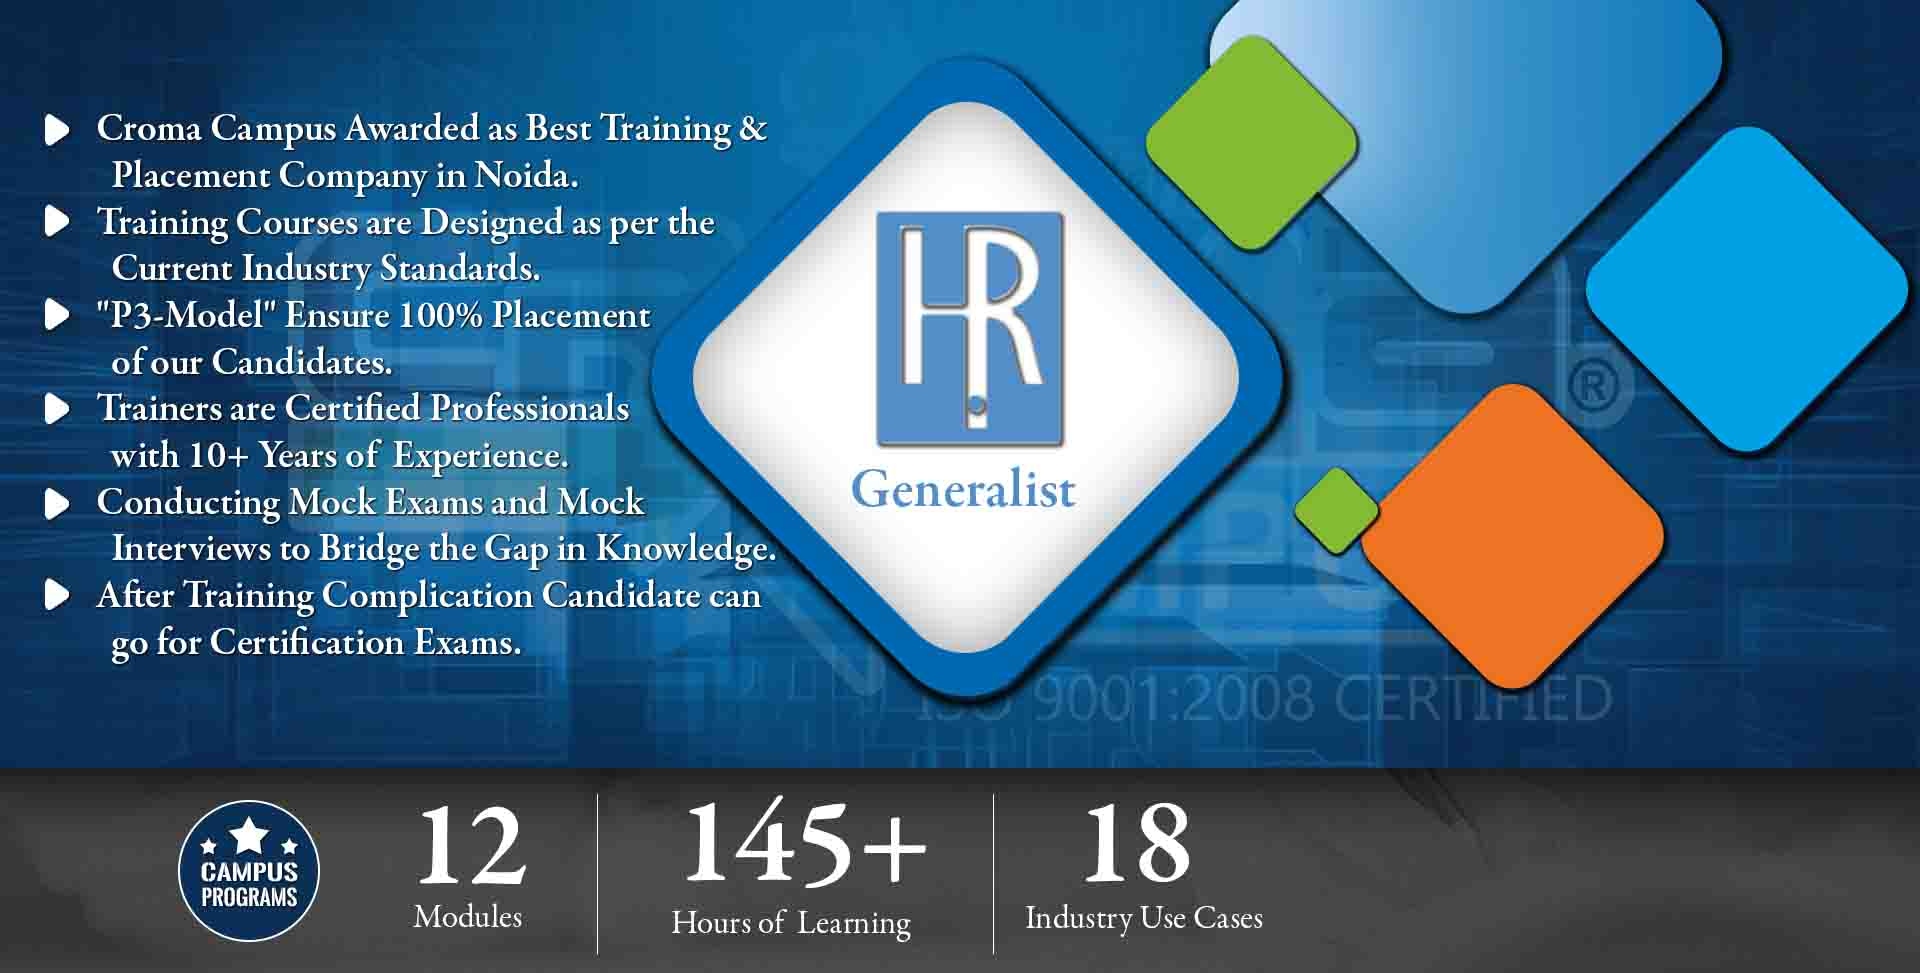 HR Generalist Training in Noida- Croma Campus